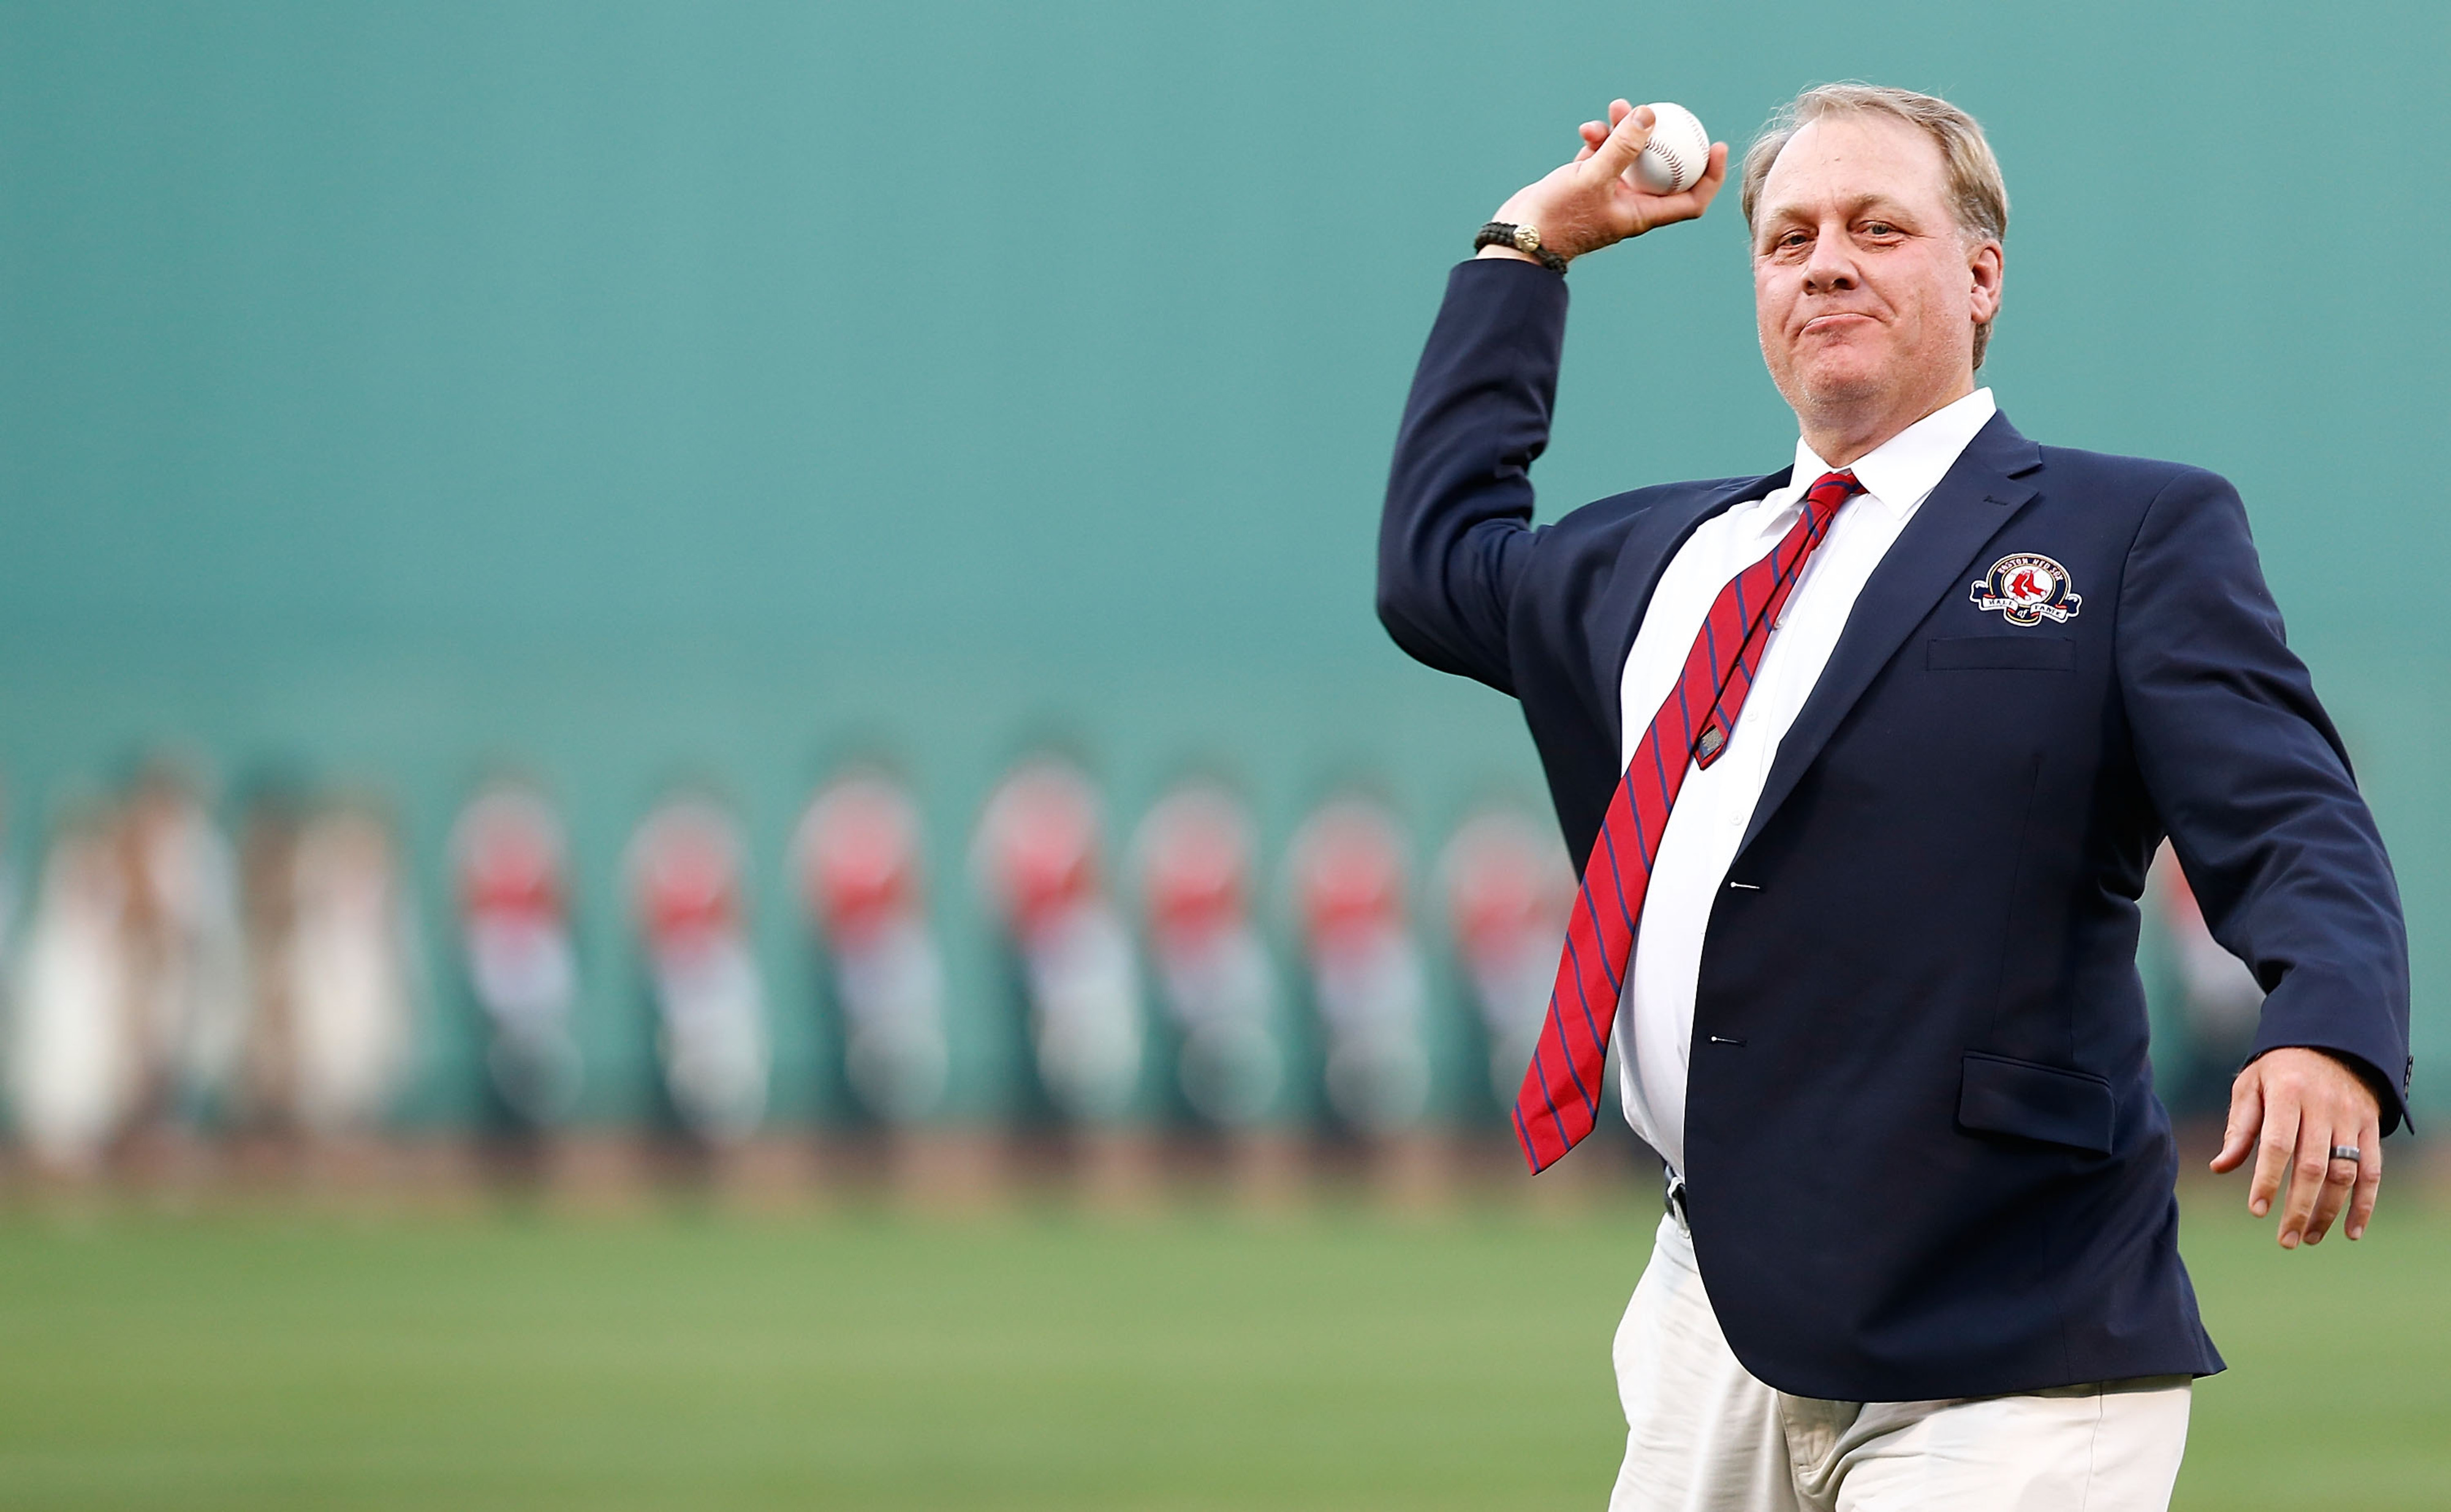 Curt Schilling is part of an exceptional class of new entries on the Hall of Fame ballot.